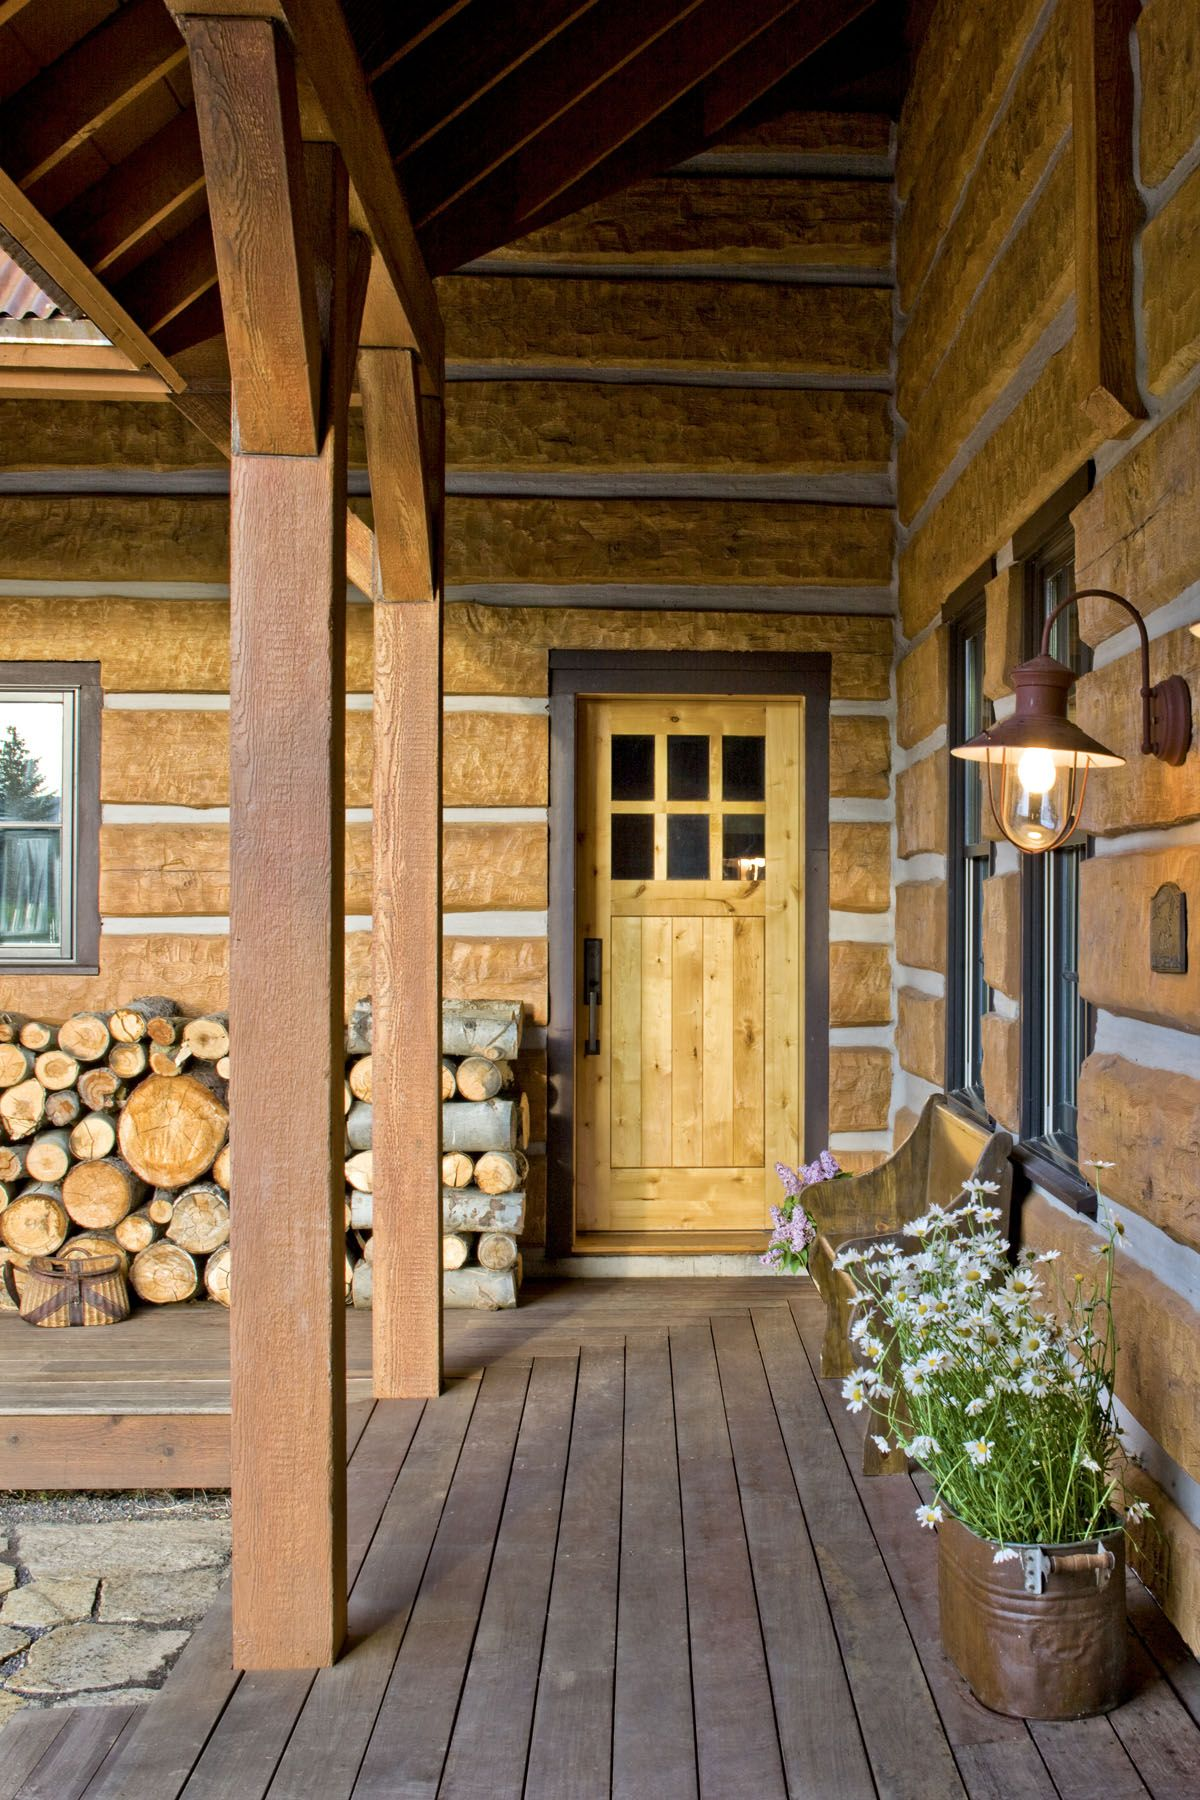 cabins rustic cabin life bc wall interior best magazine